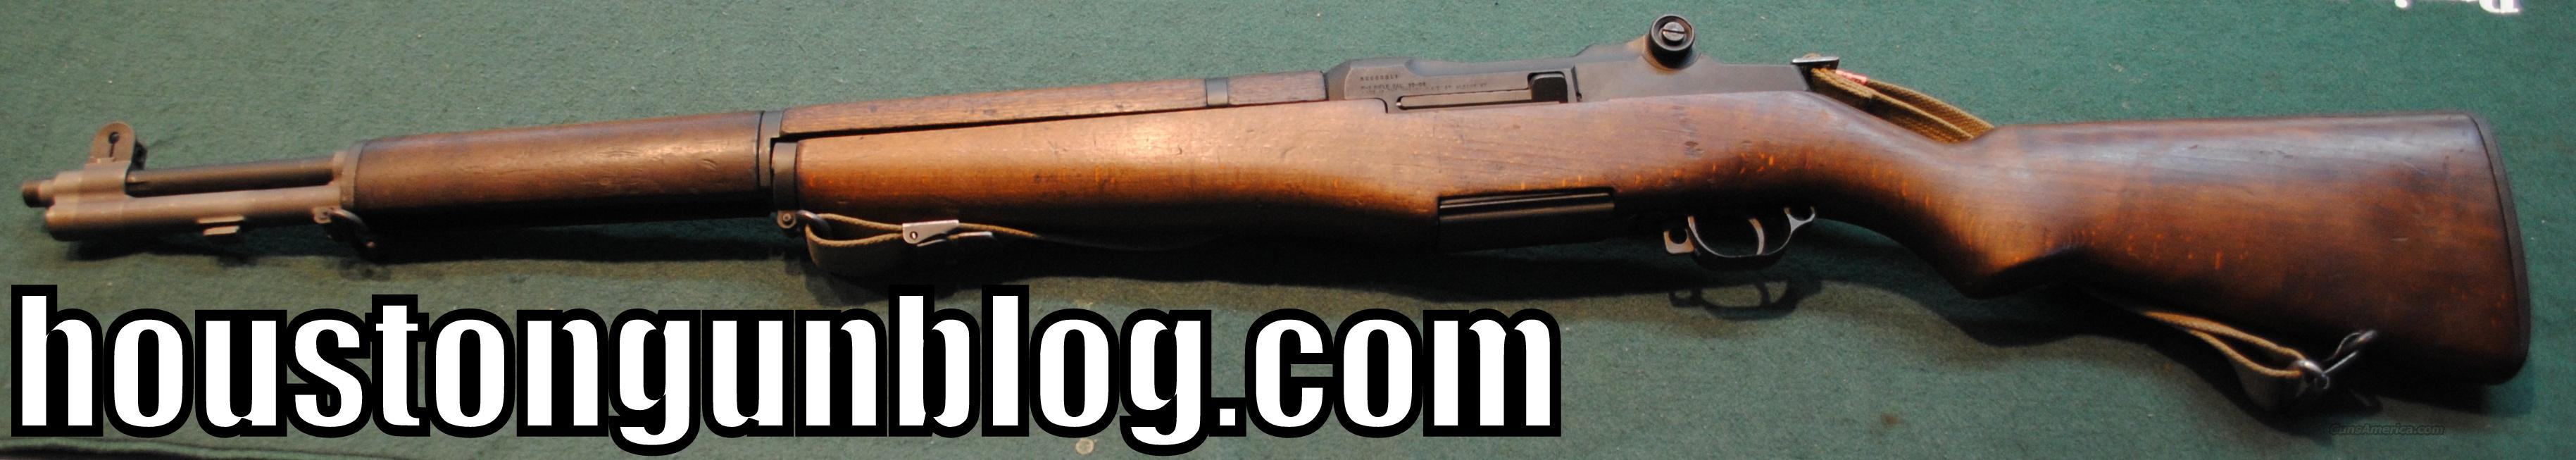 Century Arms M1 Garand 30.06 Low Serial Number  Guns > Rifles > Century International Arms - Rifles > Rifles